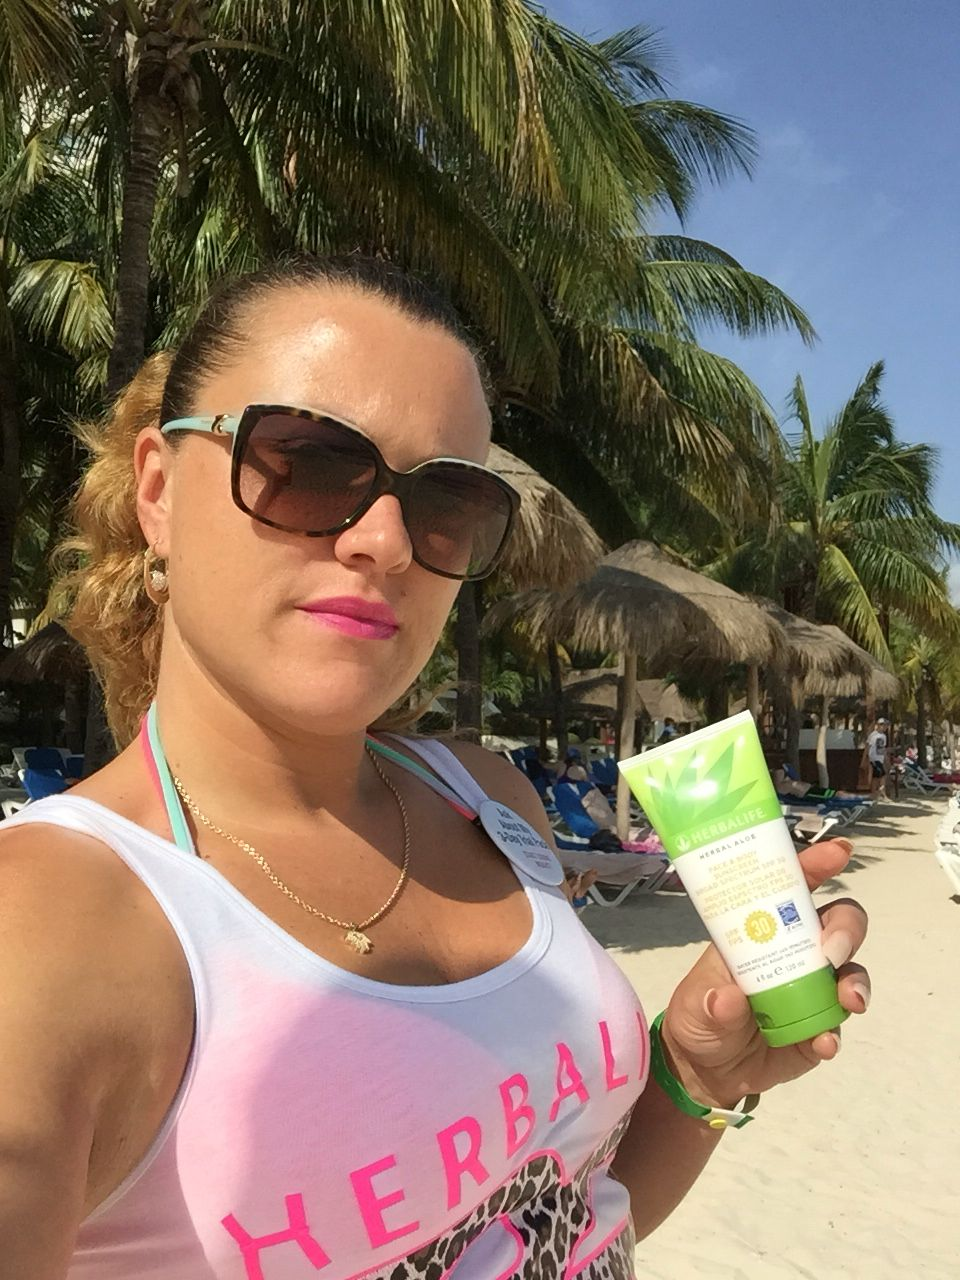 Herbalife sunscreen has an amazing smell and it works. I was the only one to use the product one day because the family ran straight to the water and they got burnt while I did not. Herbalife also has aloe gel to sooth sun burn. Get it @ www.GoHerbalife.com/hilazloof/en-US